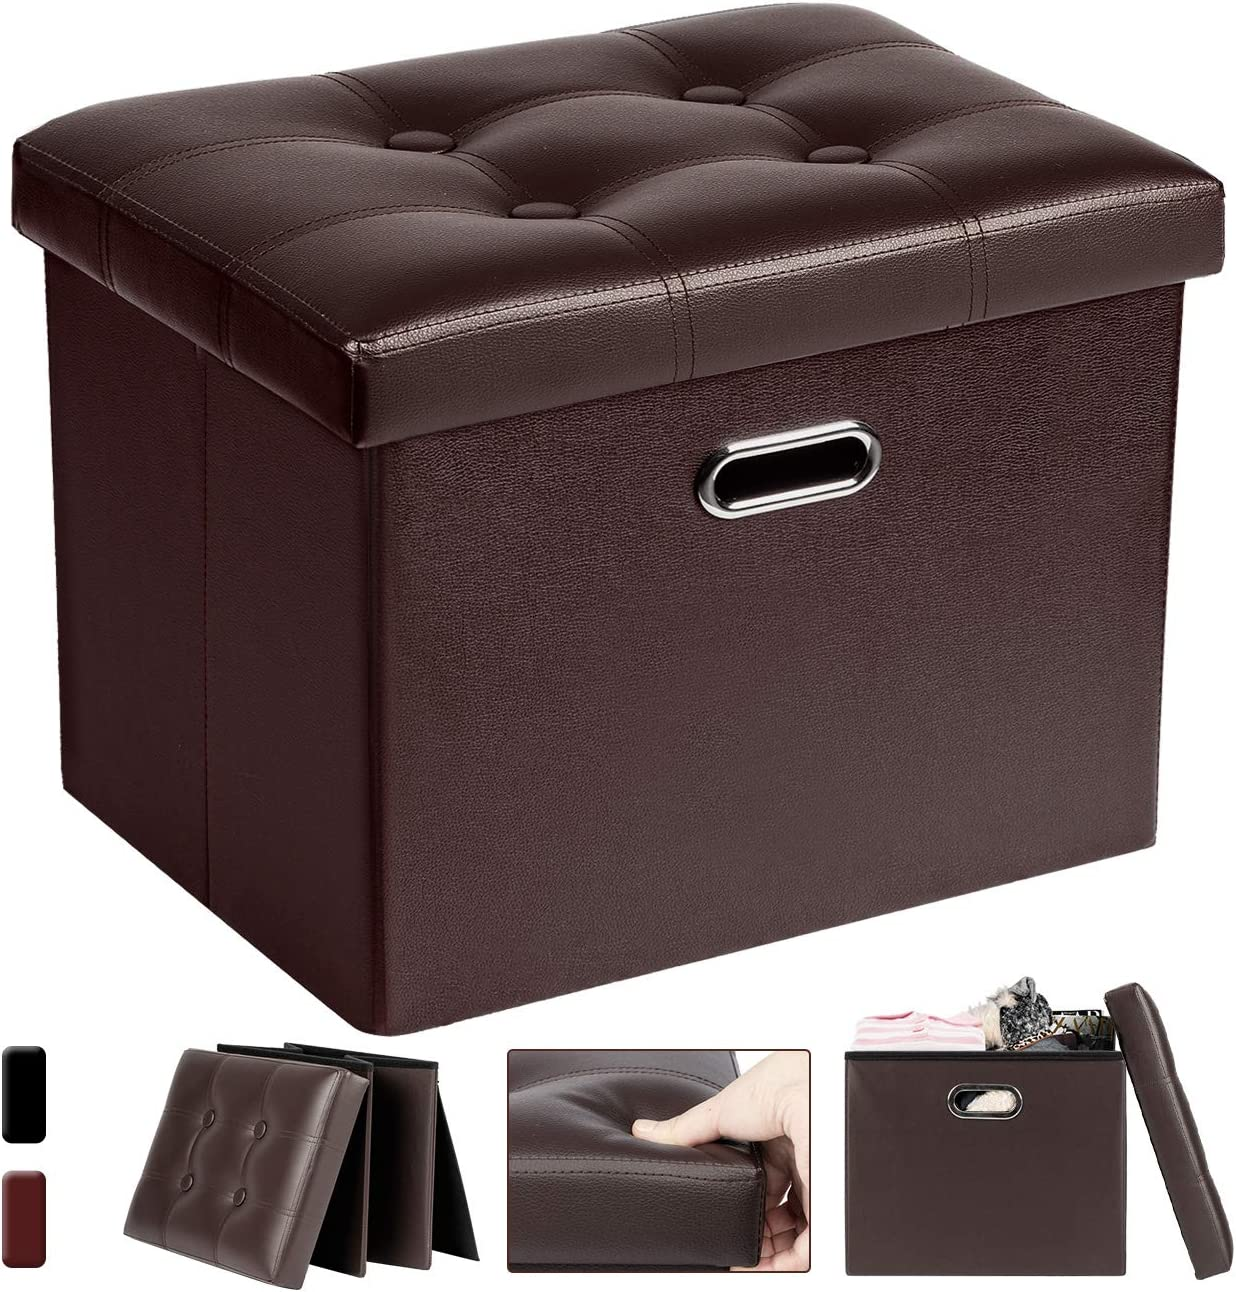 COSYLAND Folding Storage Ottoman Seat Leather Footstool Toy Storage Box Bedroom Foot Stool Toy Chest Shoe Bench Space Saving Boxes 43 x 33 x 38cm Coffee